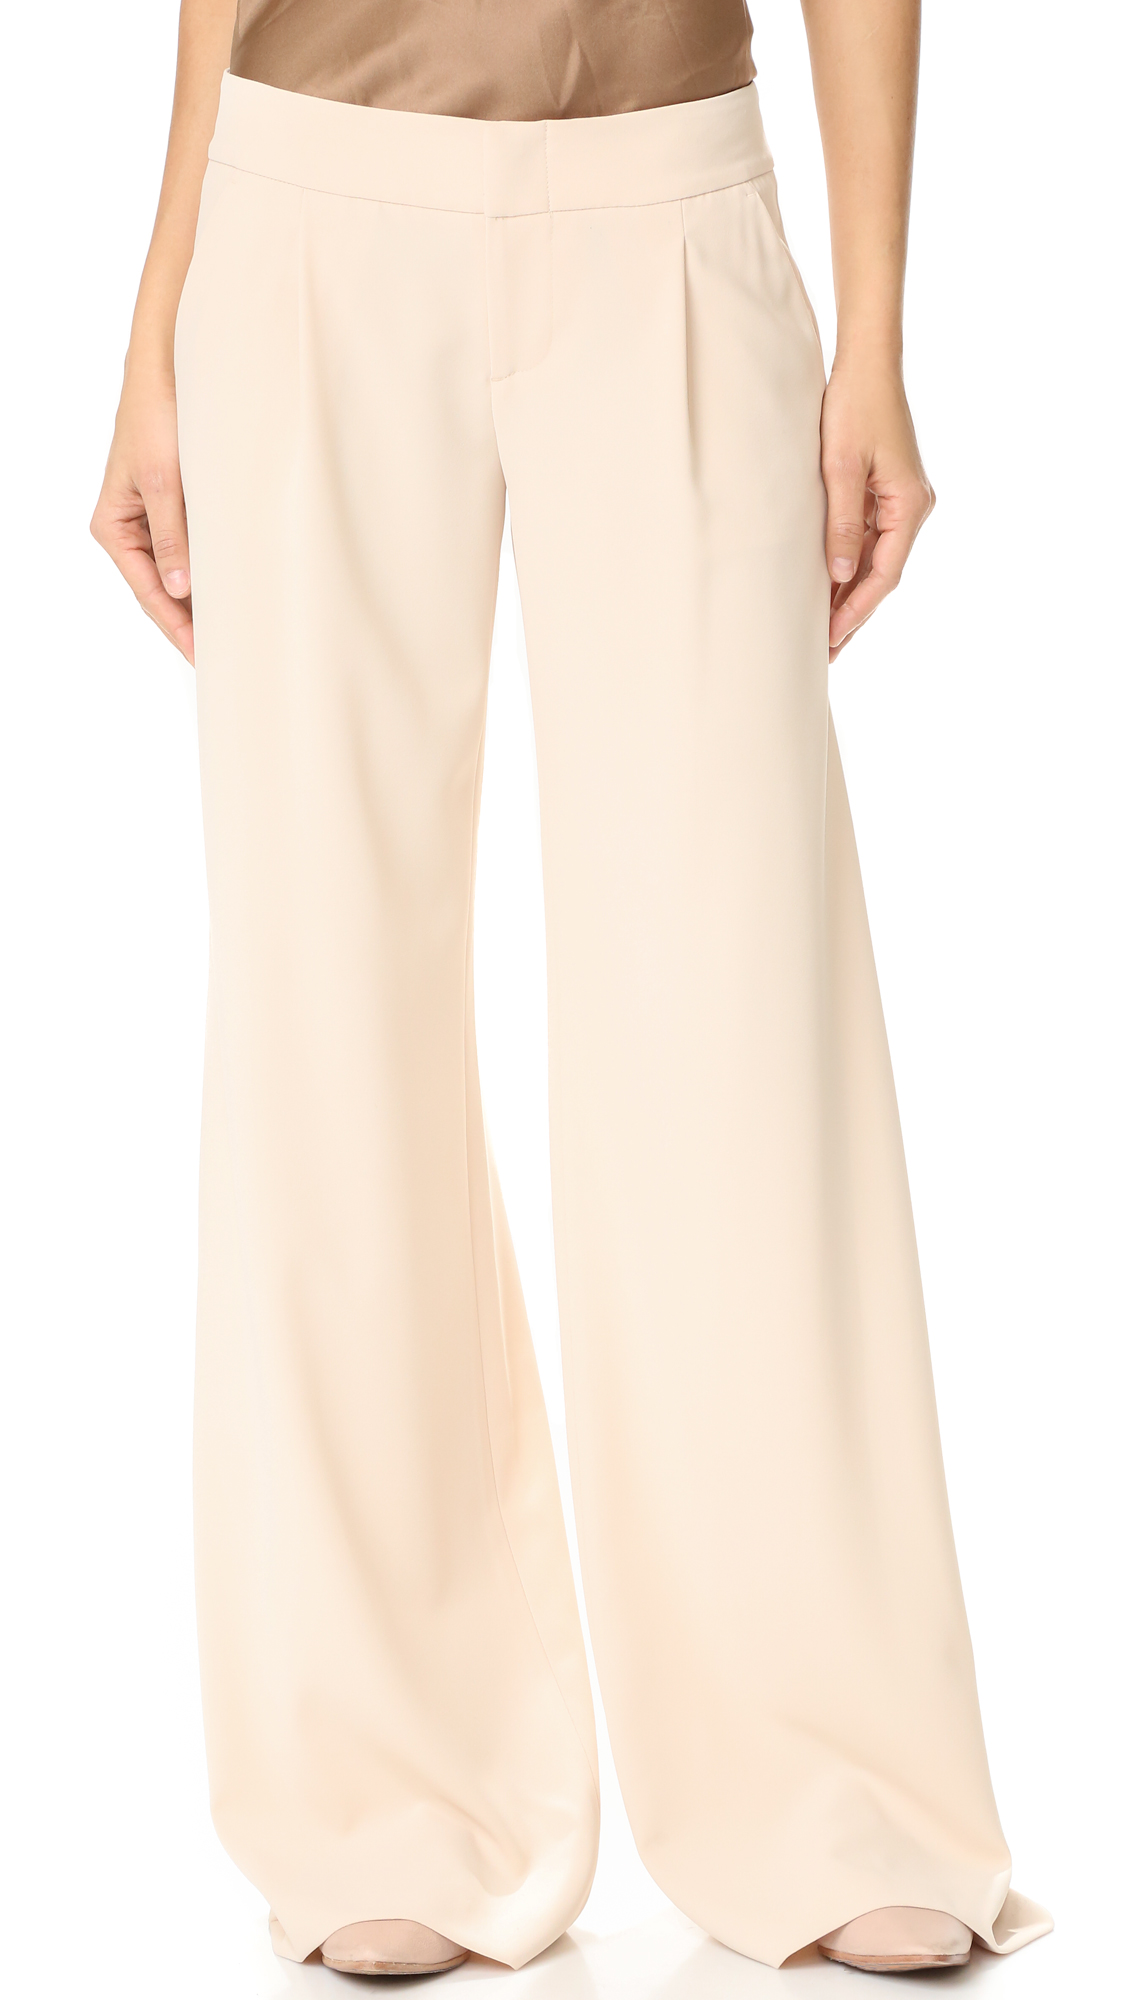 Deep pleats lend graceful movement to wide leg alice + olivia trousers. A wide waistband and 4 pockets complete the signature silhouette. Double hook and eye closure and zip fly. Fabric: Crepe suiting. 100% polyester. Wash cold or dry